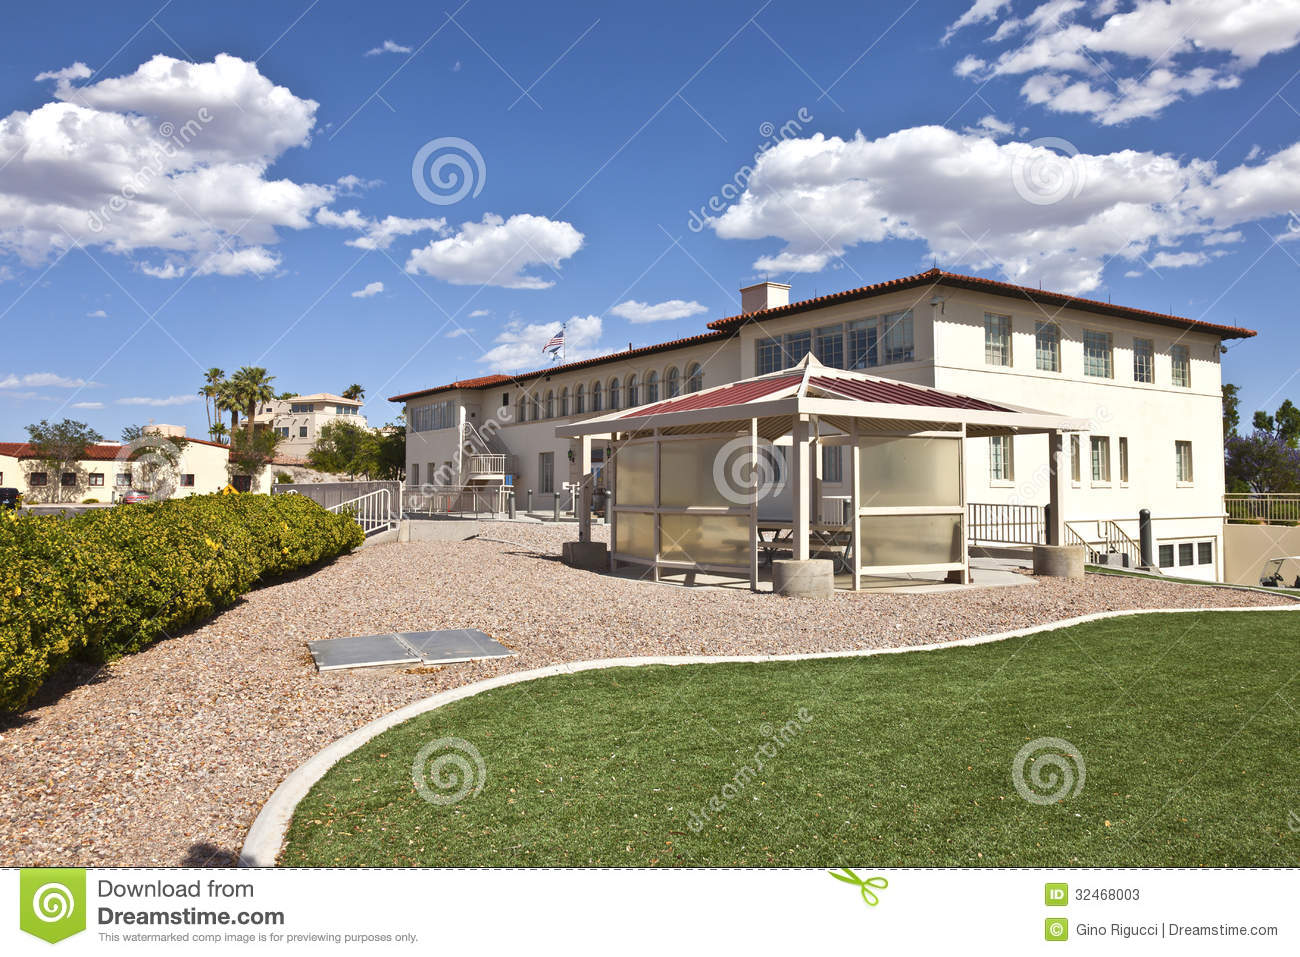 State Offices Backyard Boulder City Nevada.